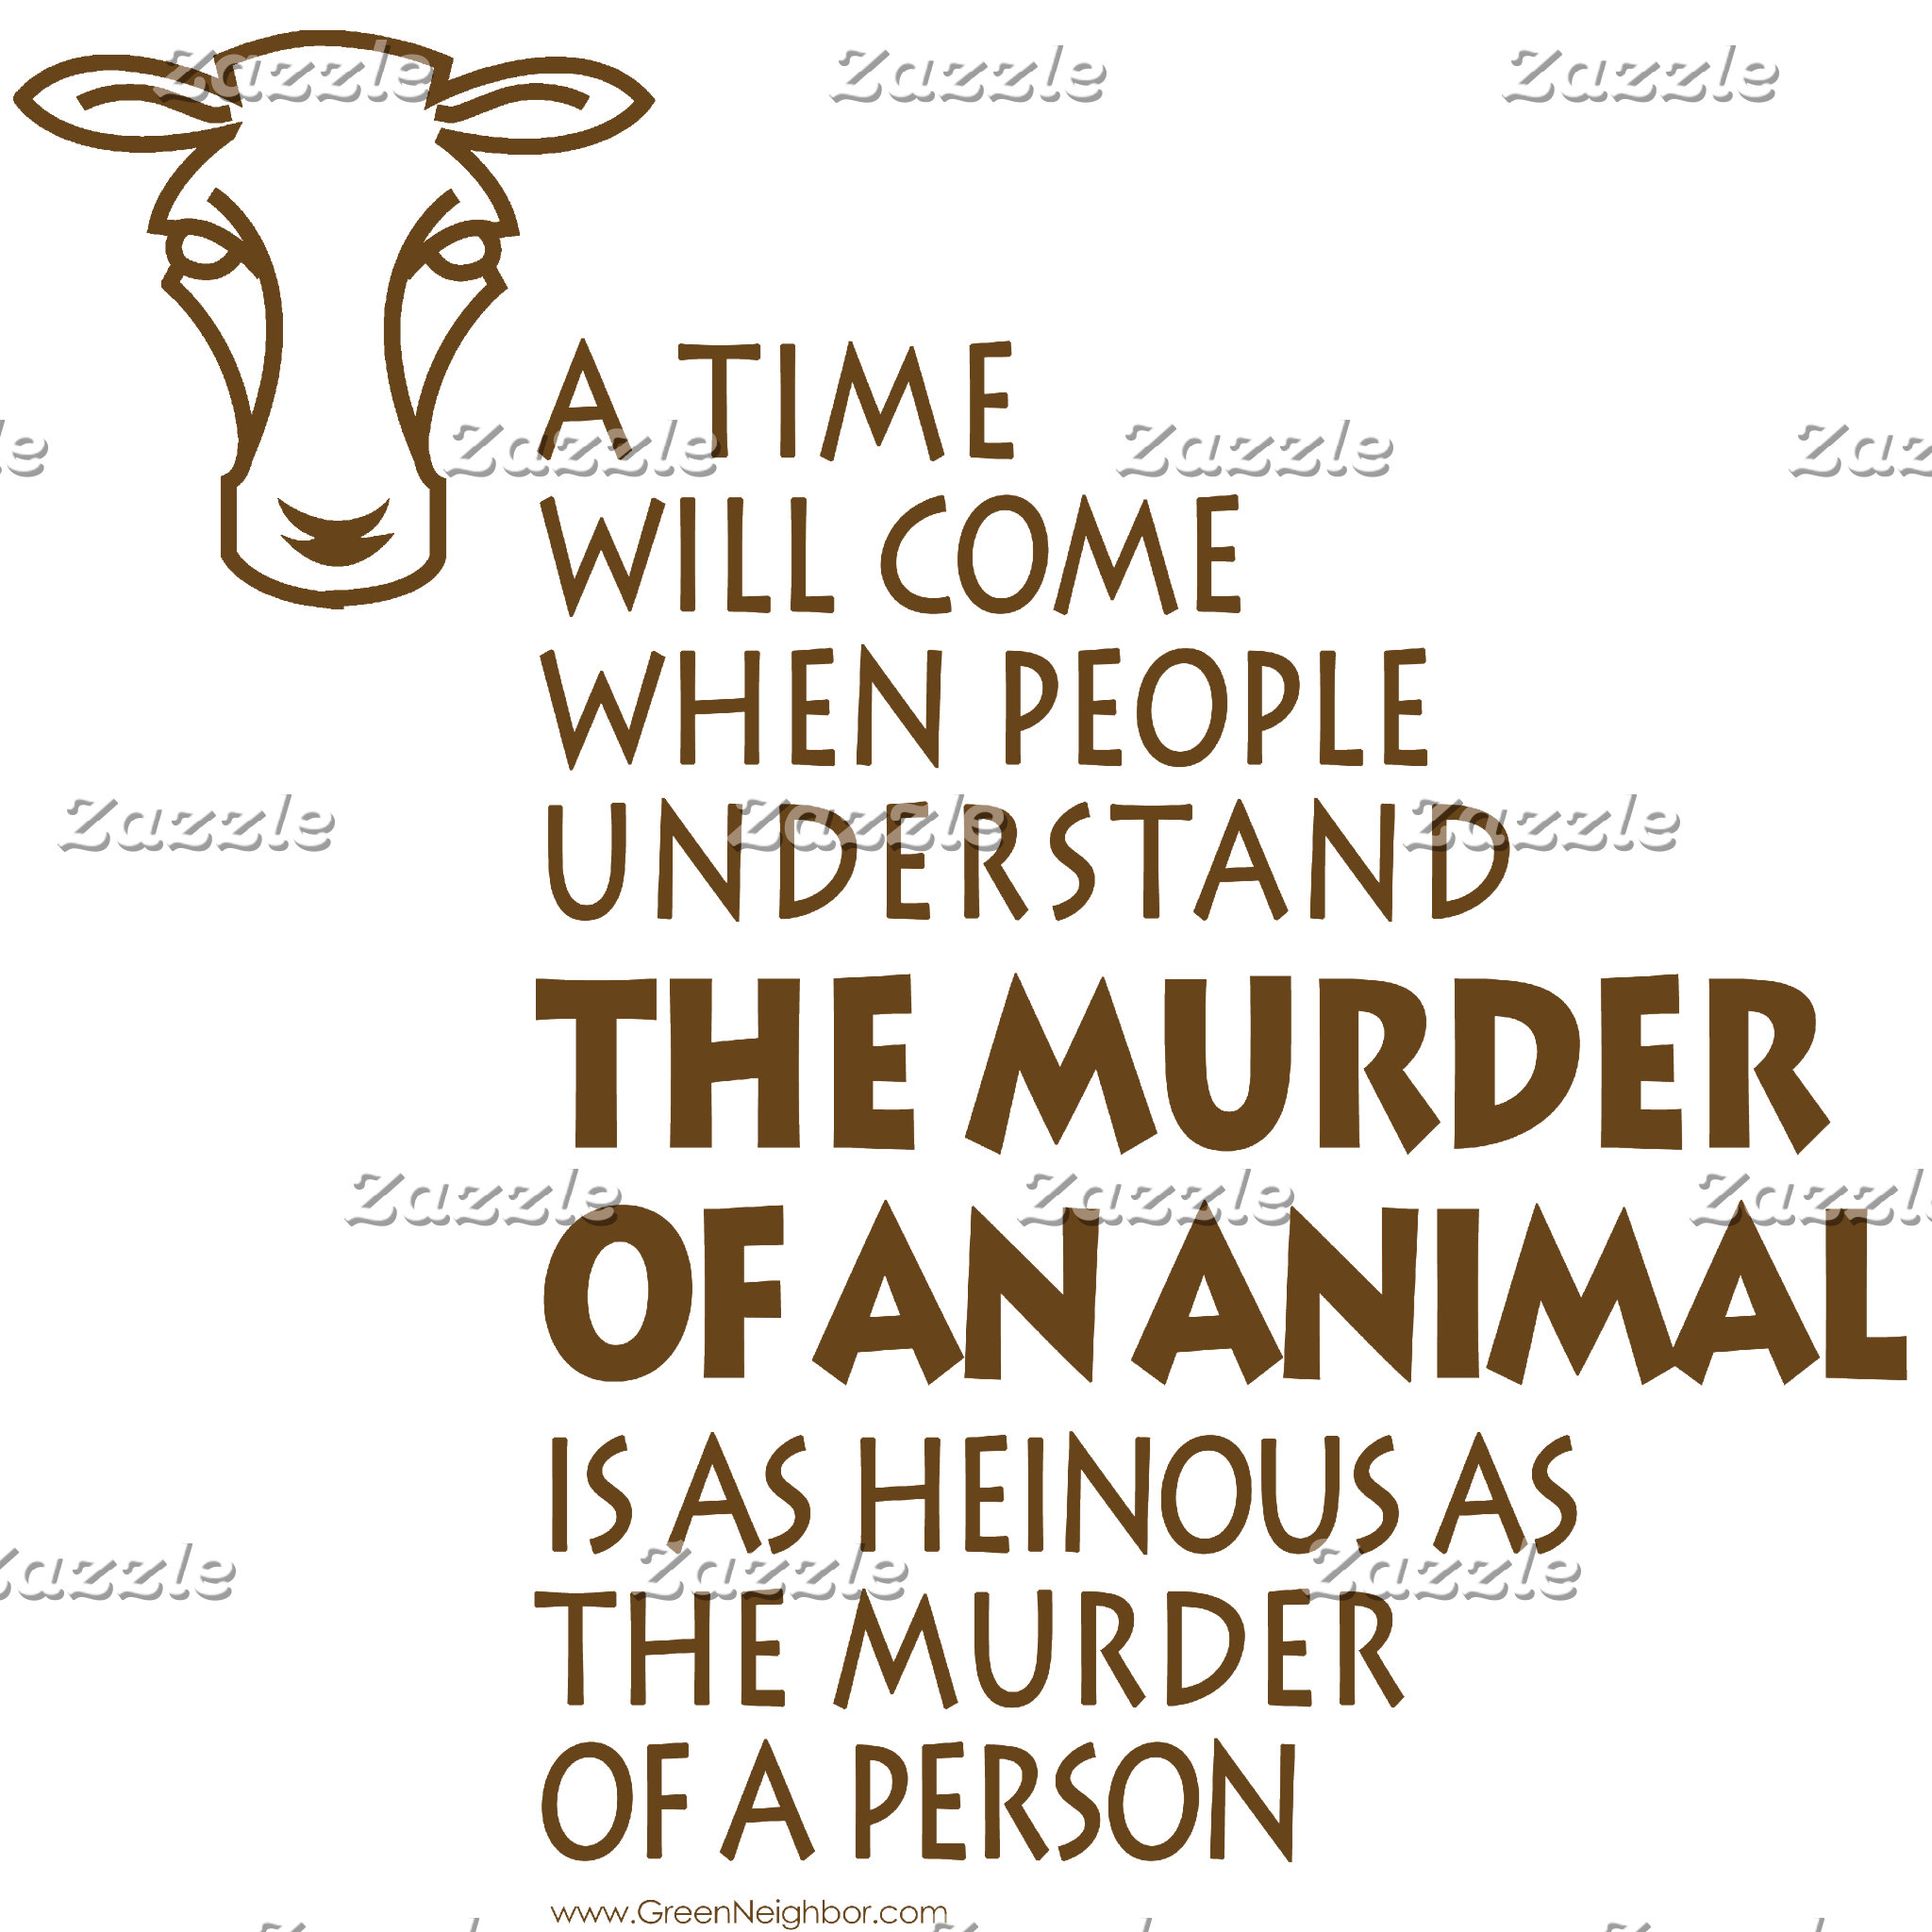 Animal Rights Quote